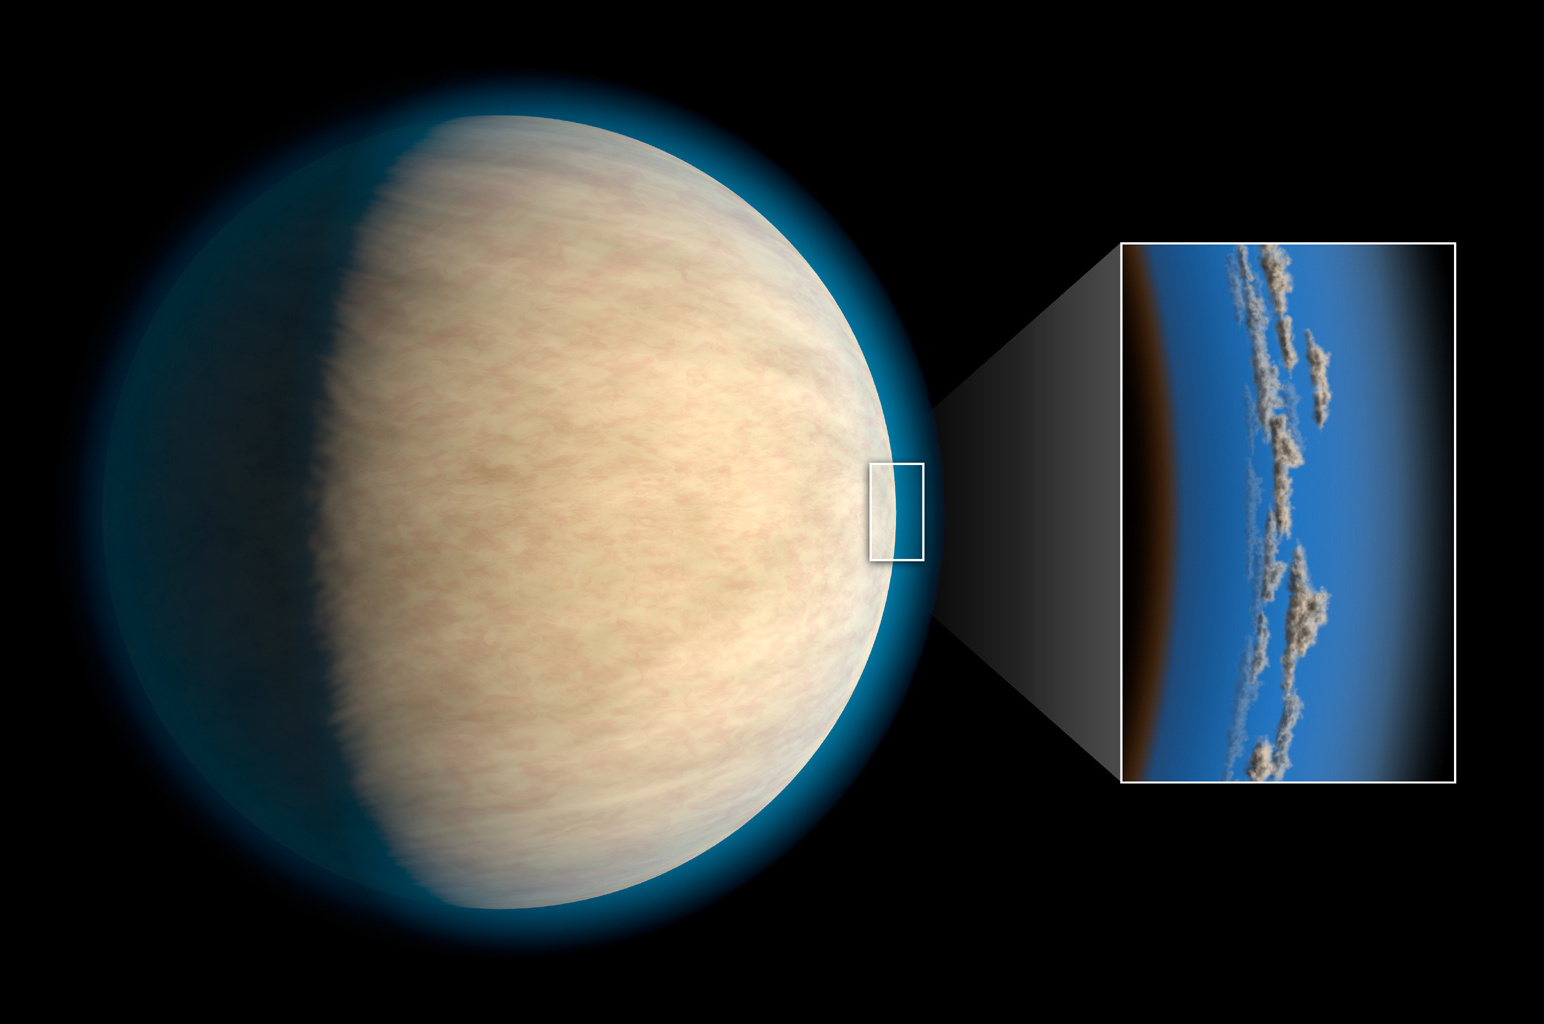 Hot Jupiters, exoplanets around the same size as Jupiter that orbit very closely to their stars, often have cloud or haze layers in their atmospheres. This may prevent space telescopes from detecting atmospheric water that lies beneath the clouds, according to a study in the Astrophysical Journal. Image credit: NASA/JPL-Caltech.